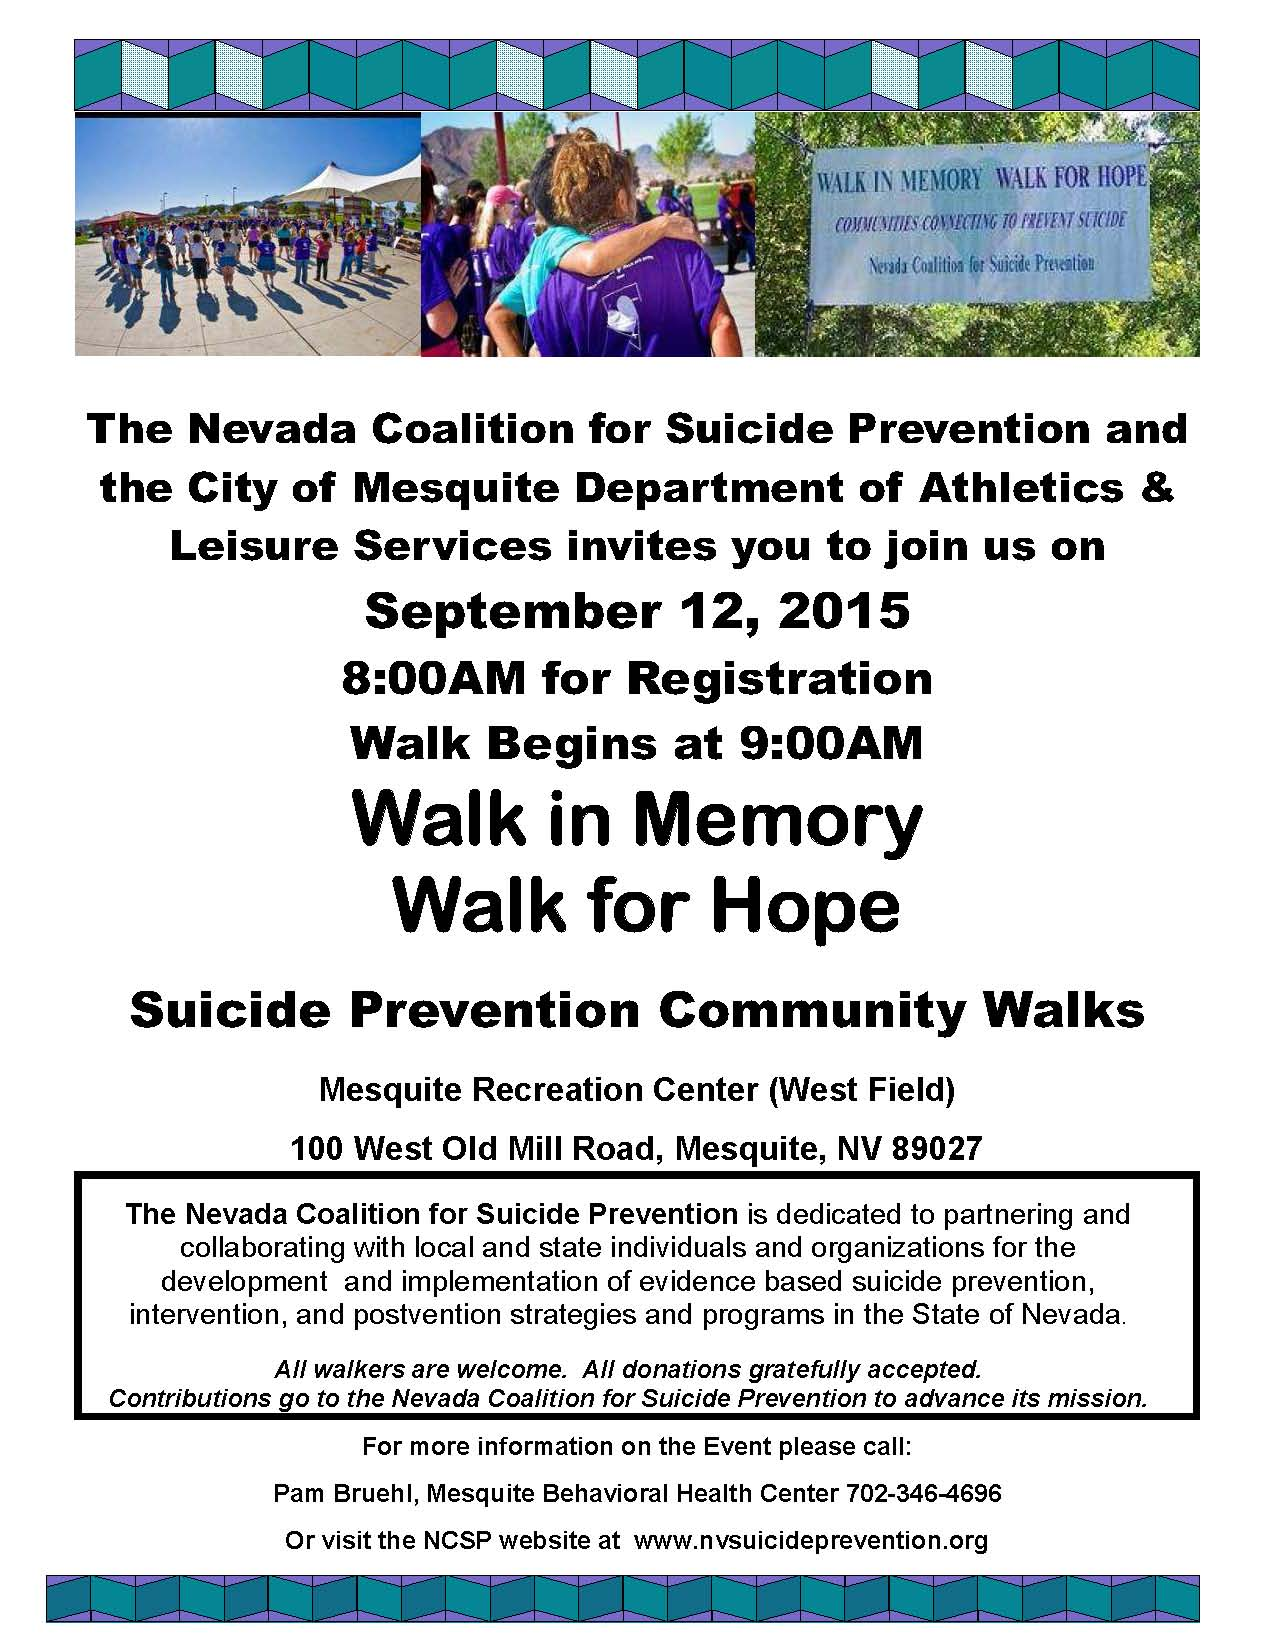 4th Annual Walk in Memory/Walk for Hope Scheduled